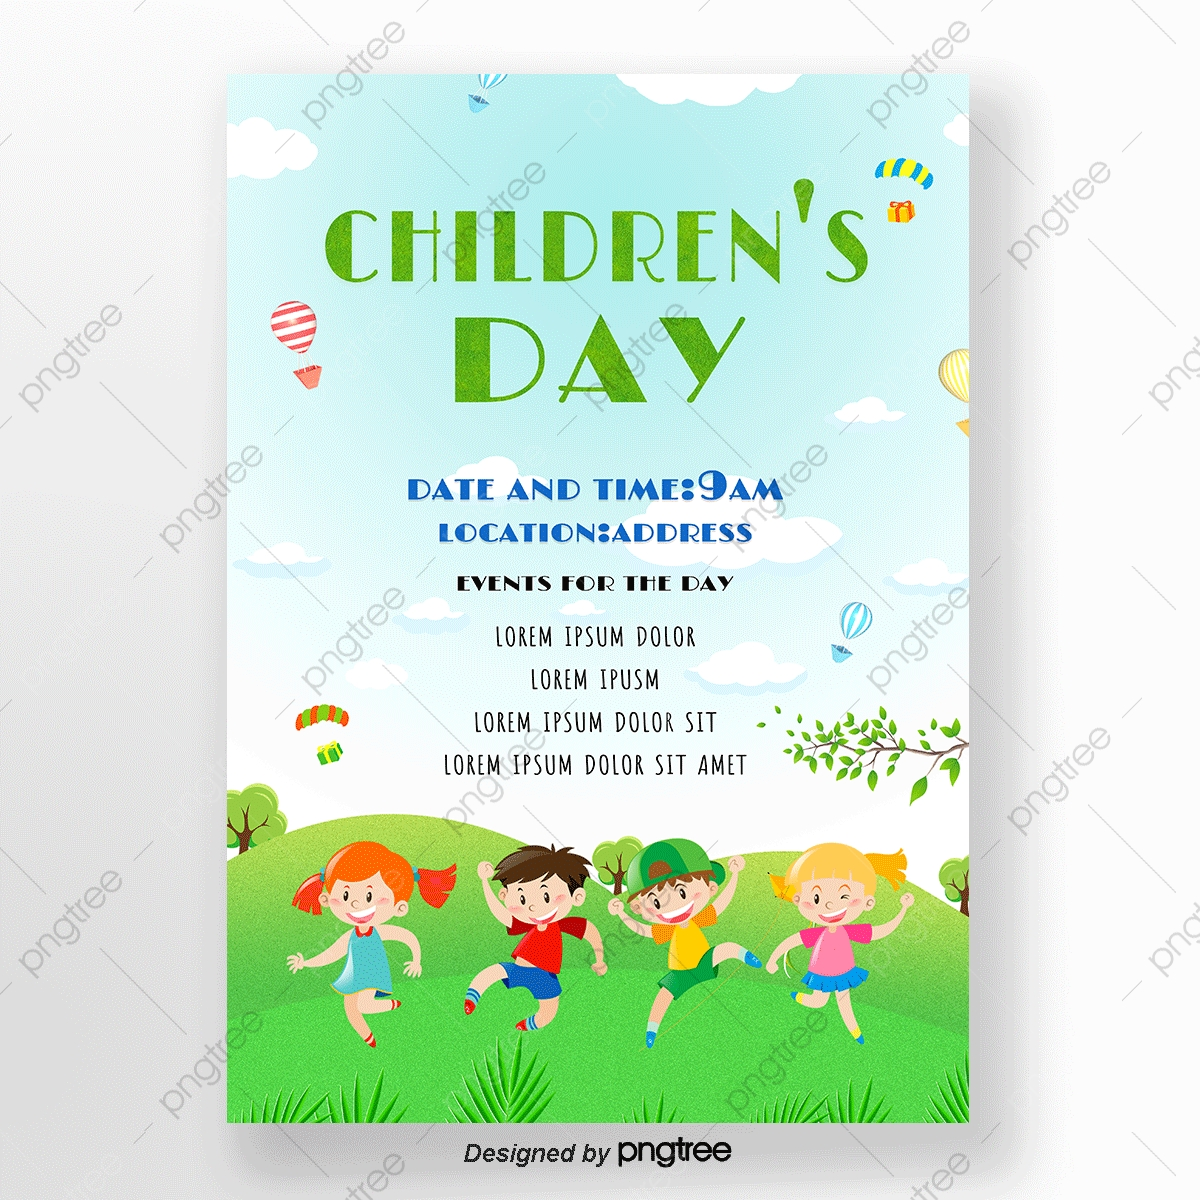 Children Day Images | Free Vectors, Stock Photos & PSD